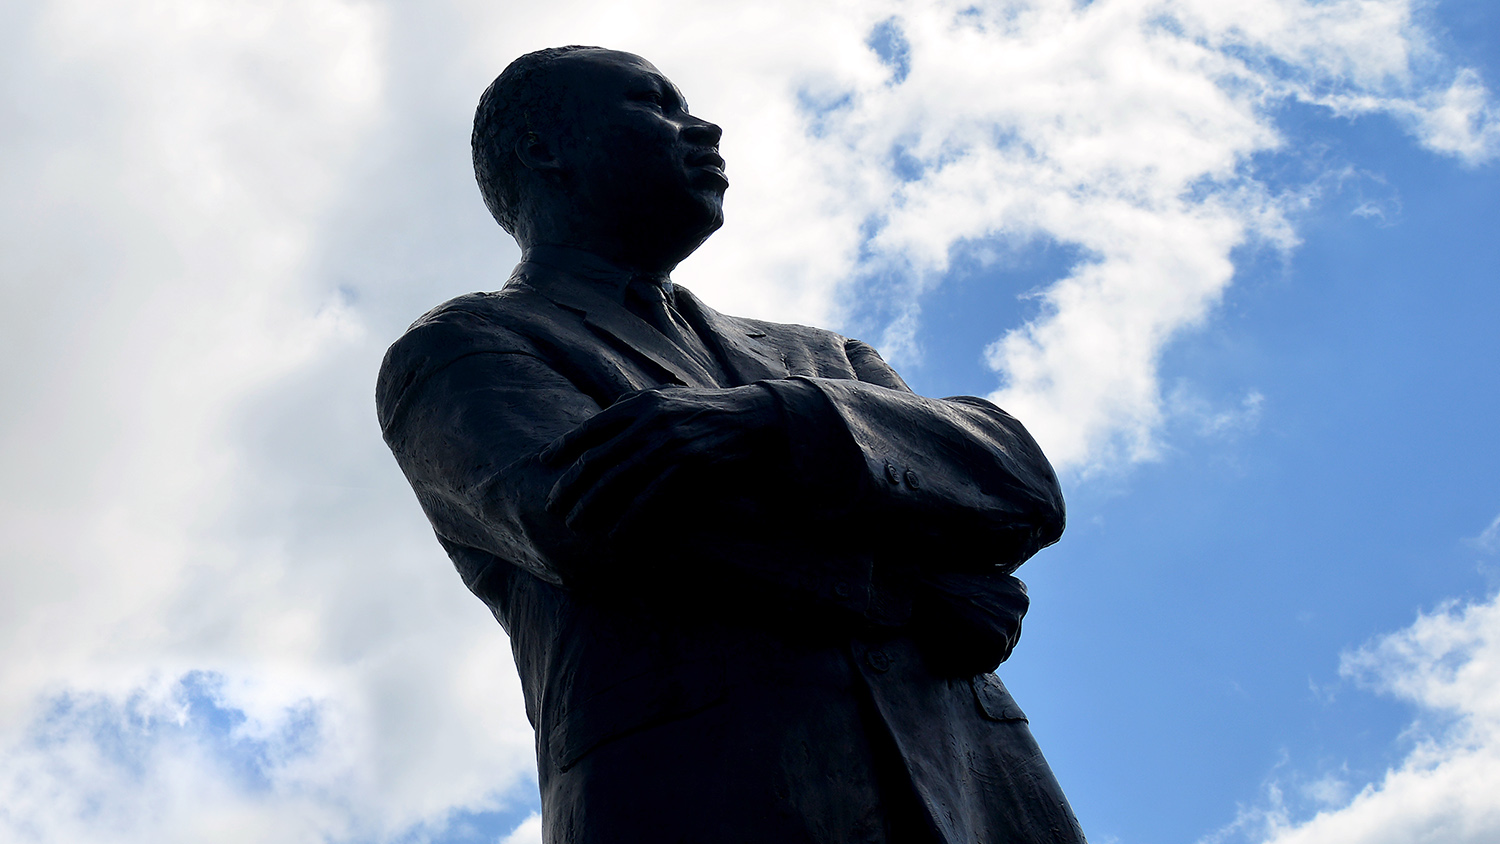 Rocky Mount's statue of Martin Luther King Jr.